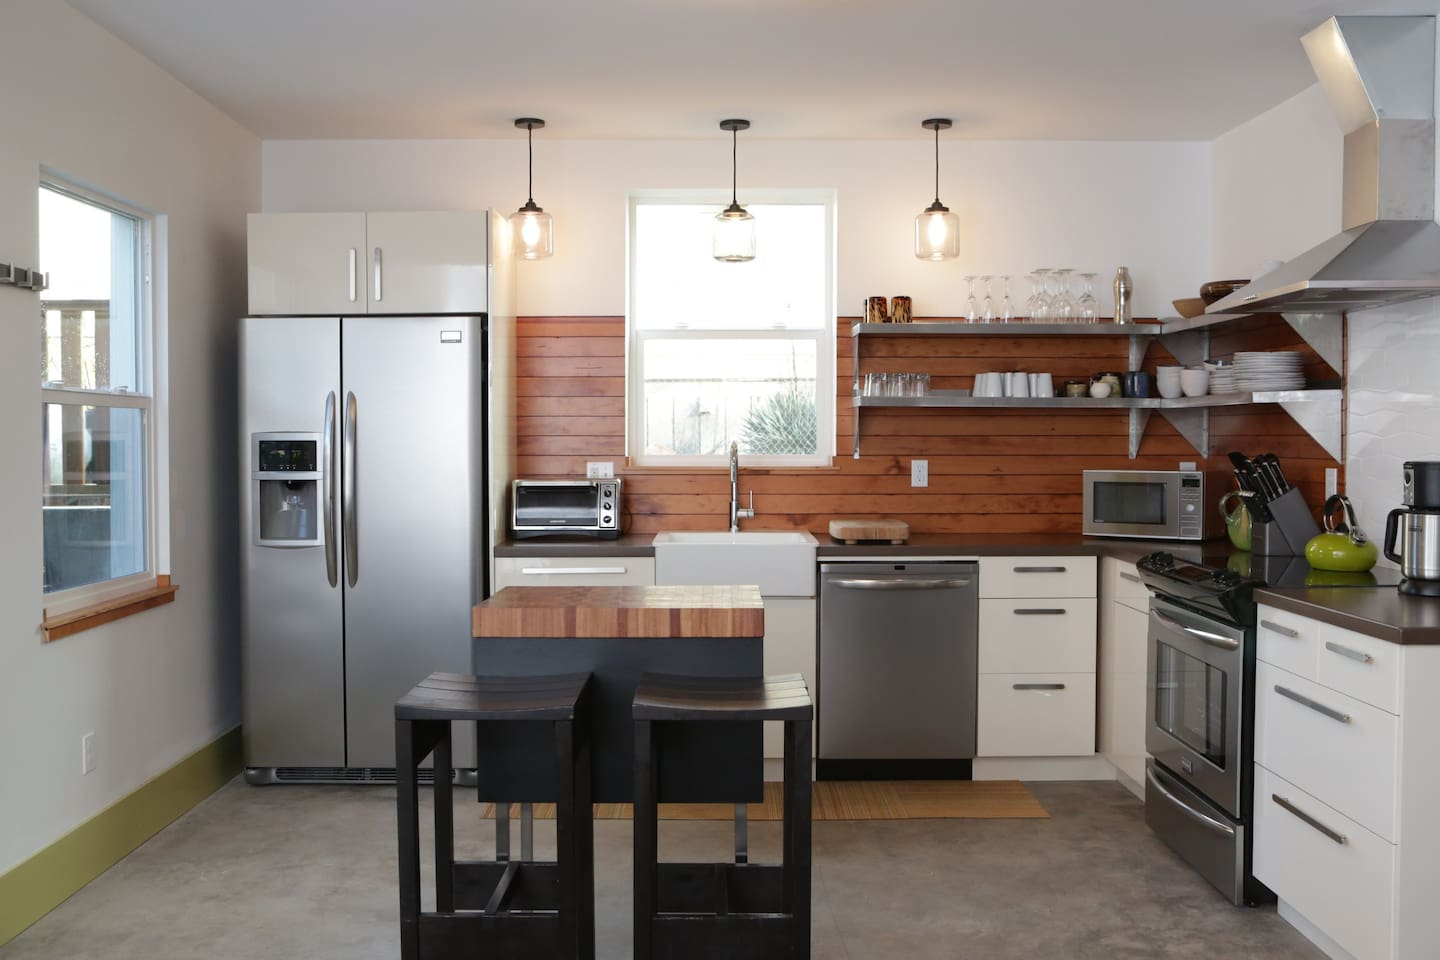 A modern, open, well stocked kitchen is what you walk into off of the patio.